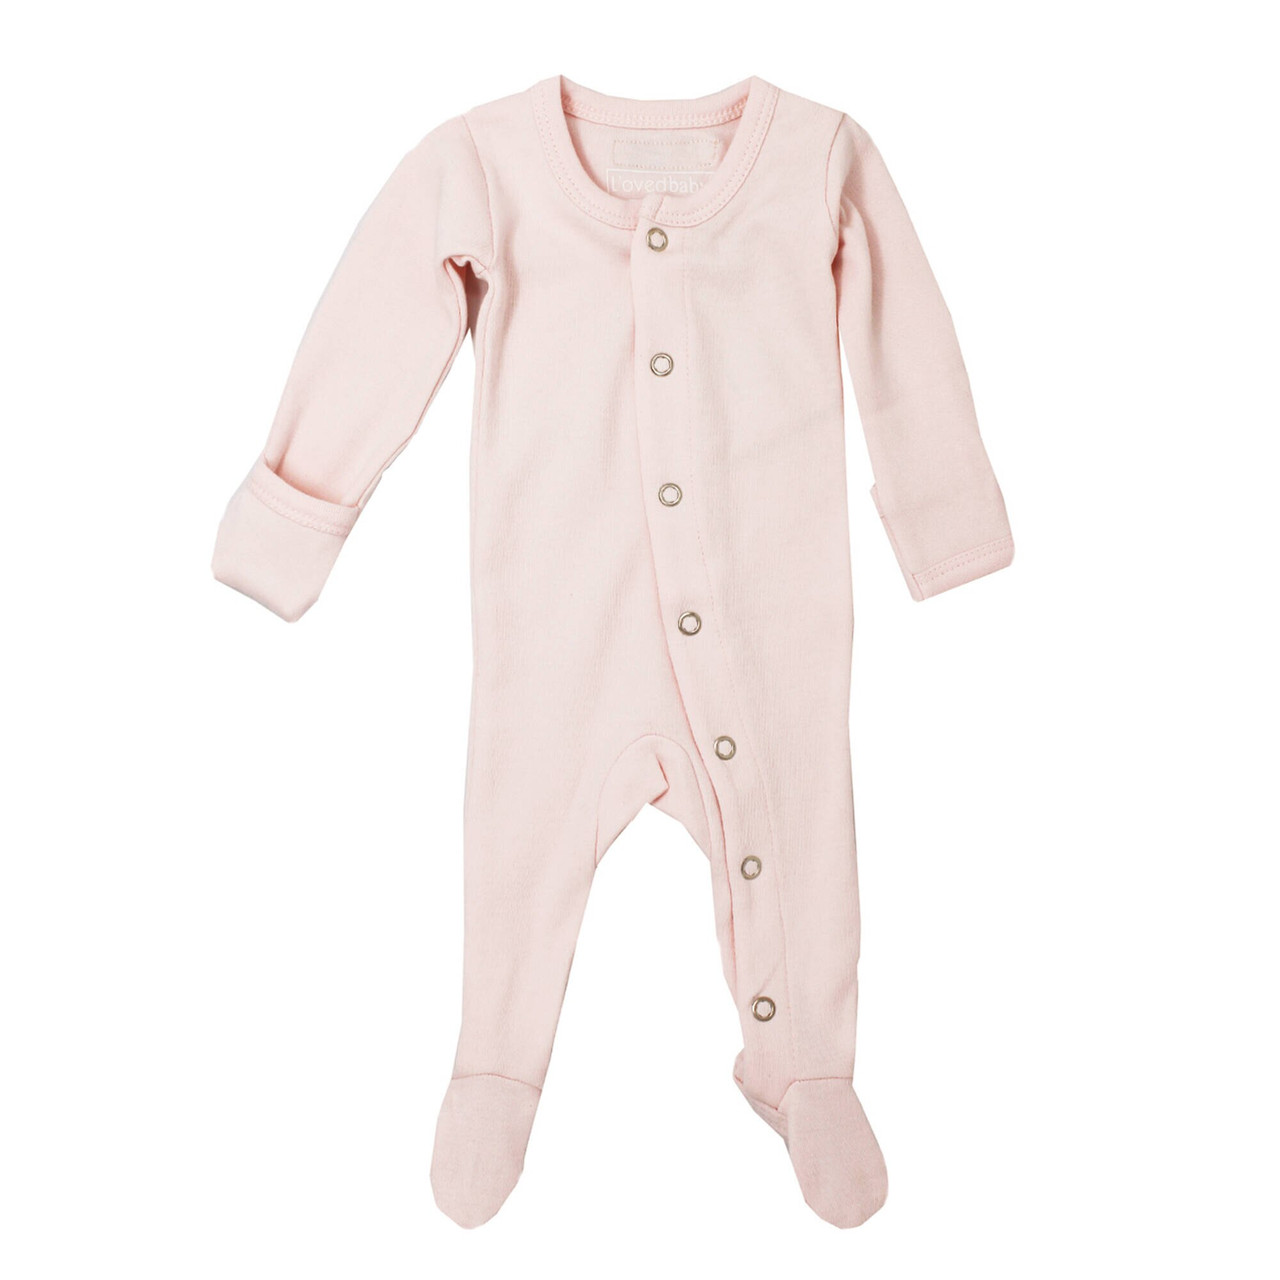 Organic Footed Overall in Blush, Flat